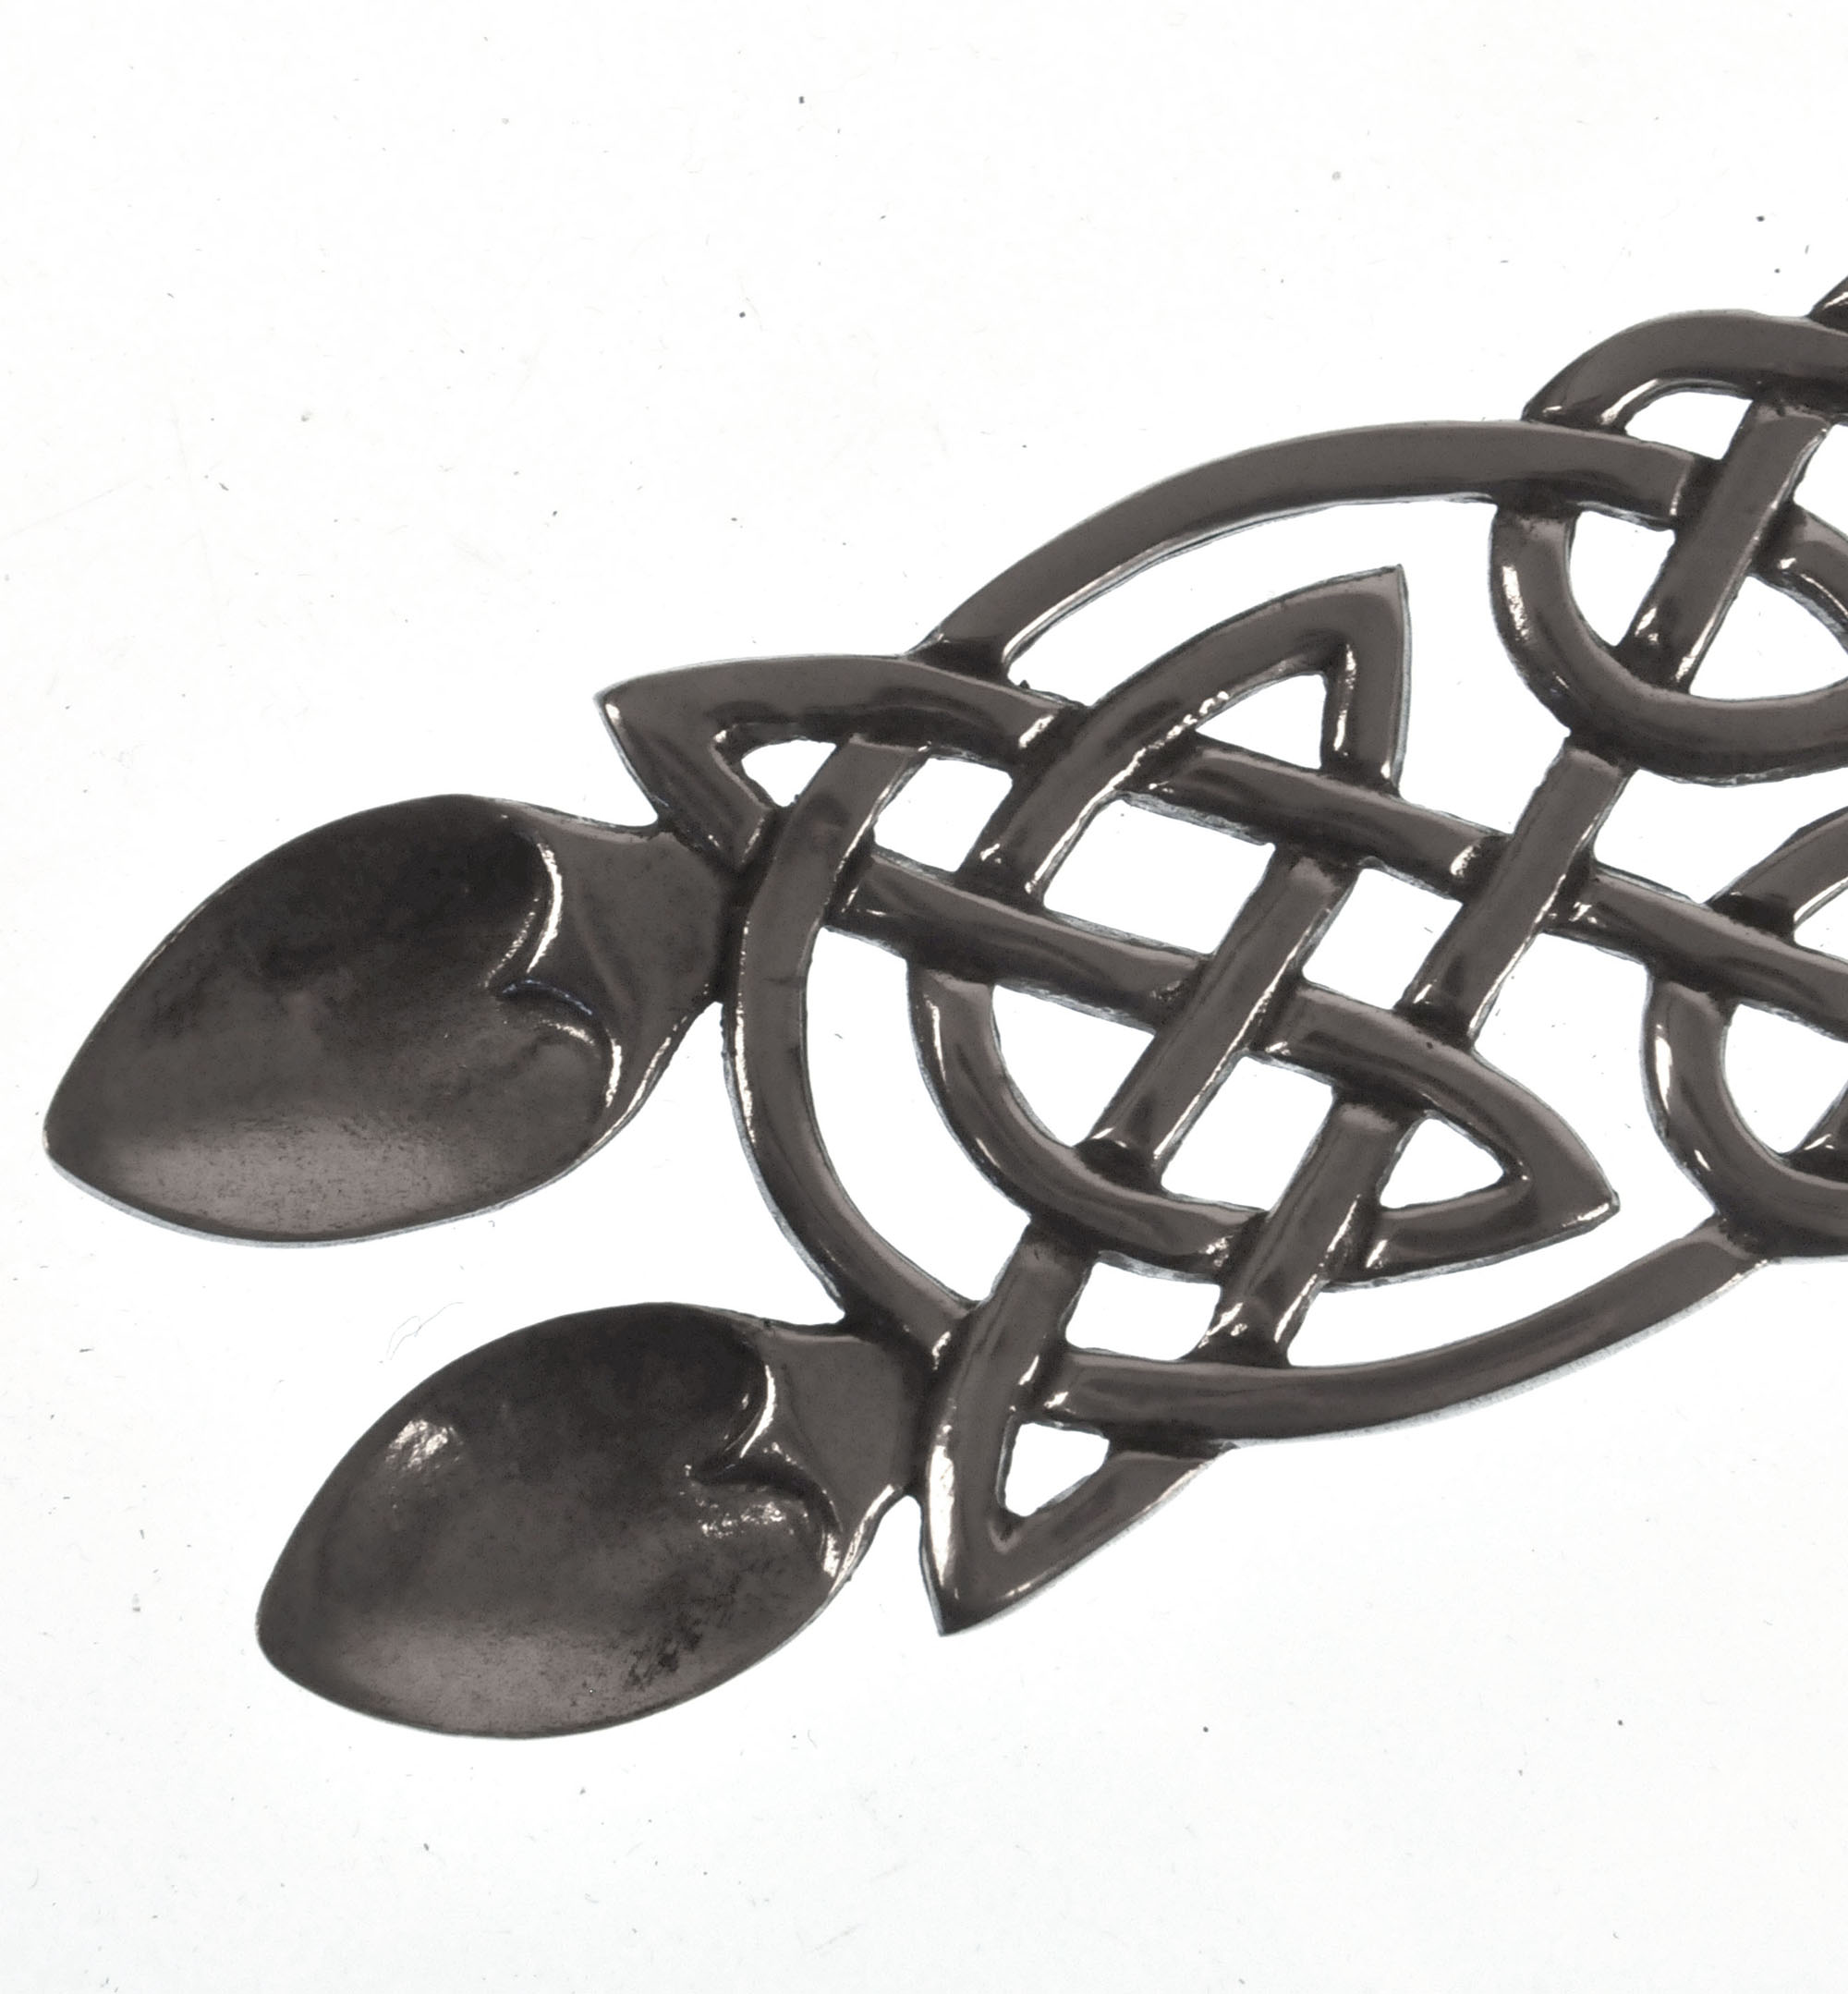 Neverending Twin Spoon Dragon Celtic Knot Lovespoon